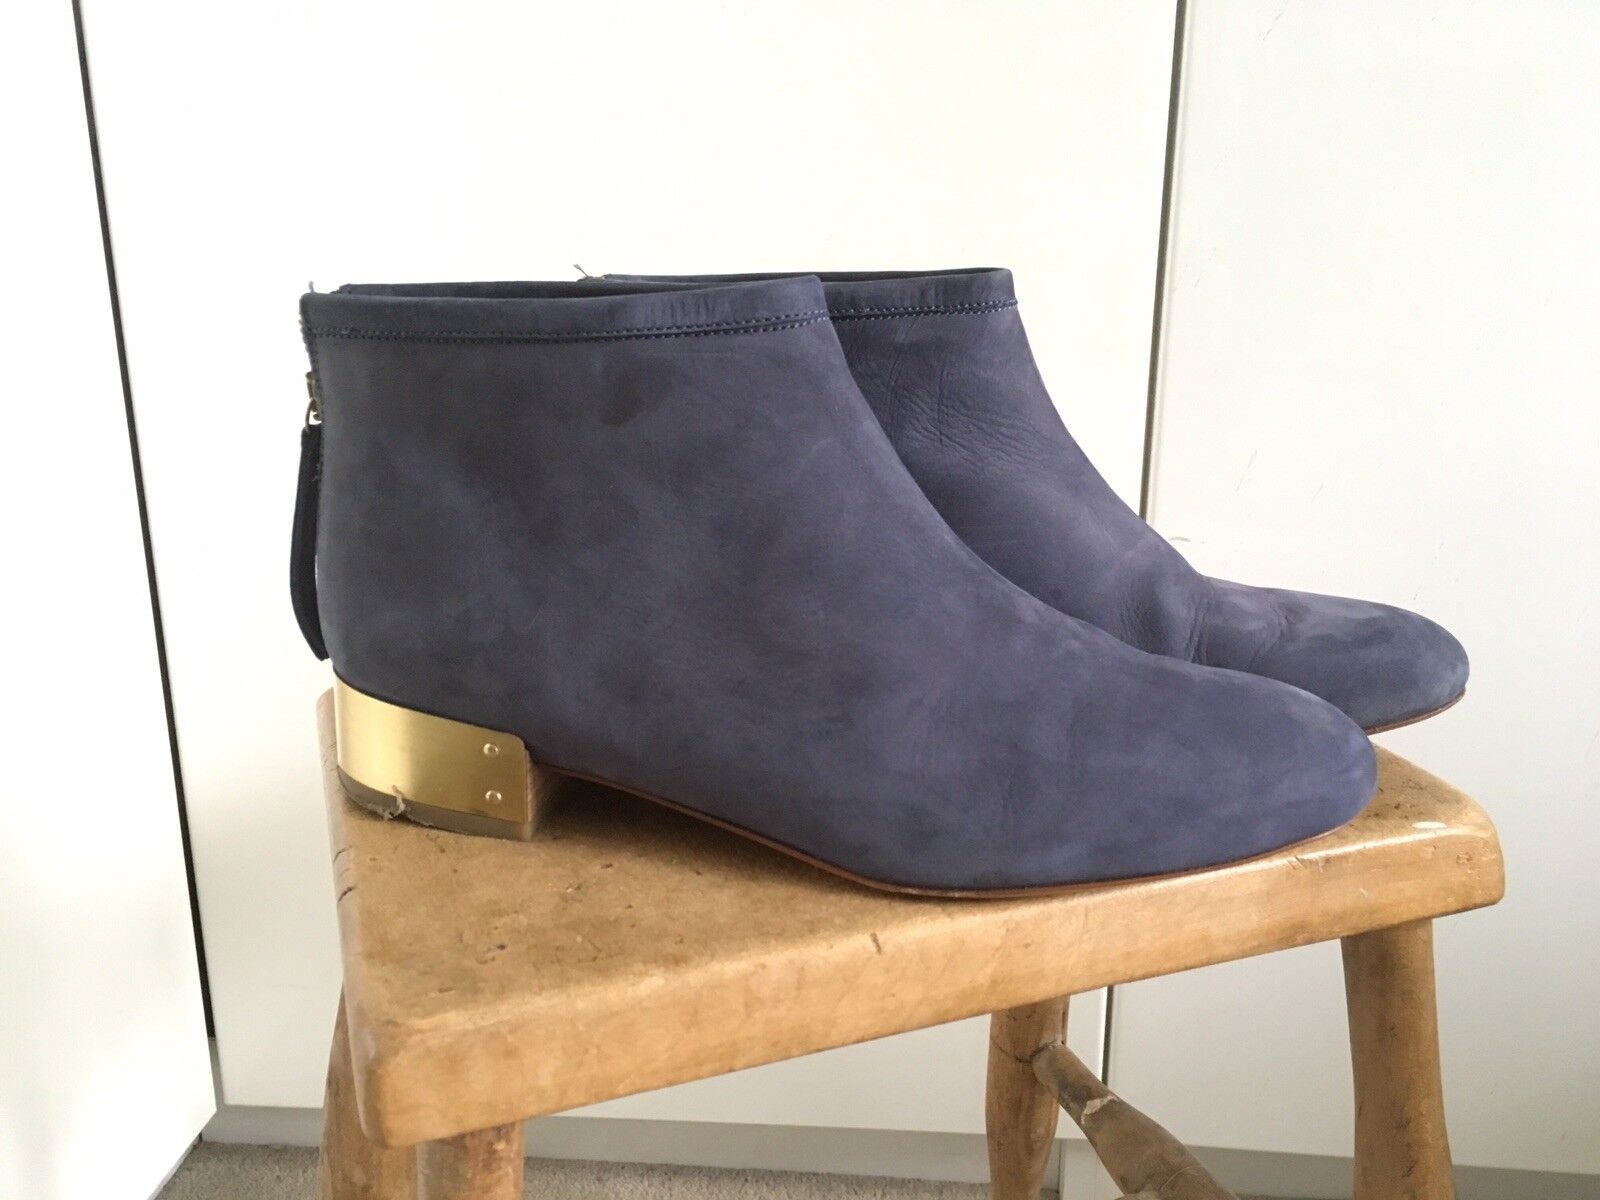 & Other Stories Womens bluee Suede Ankle Boots With gold Heel UK7 EU40